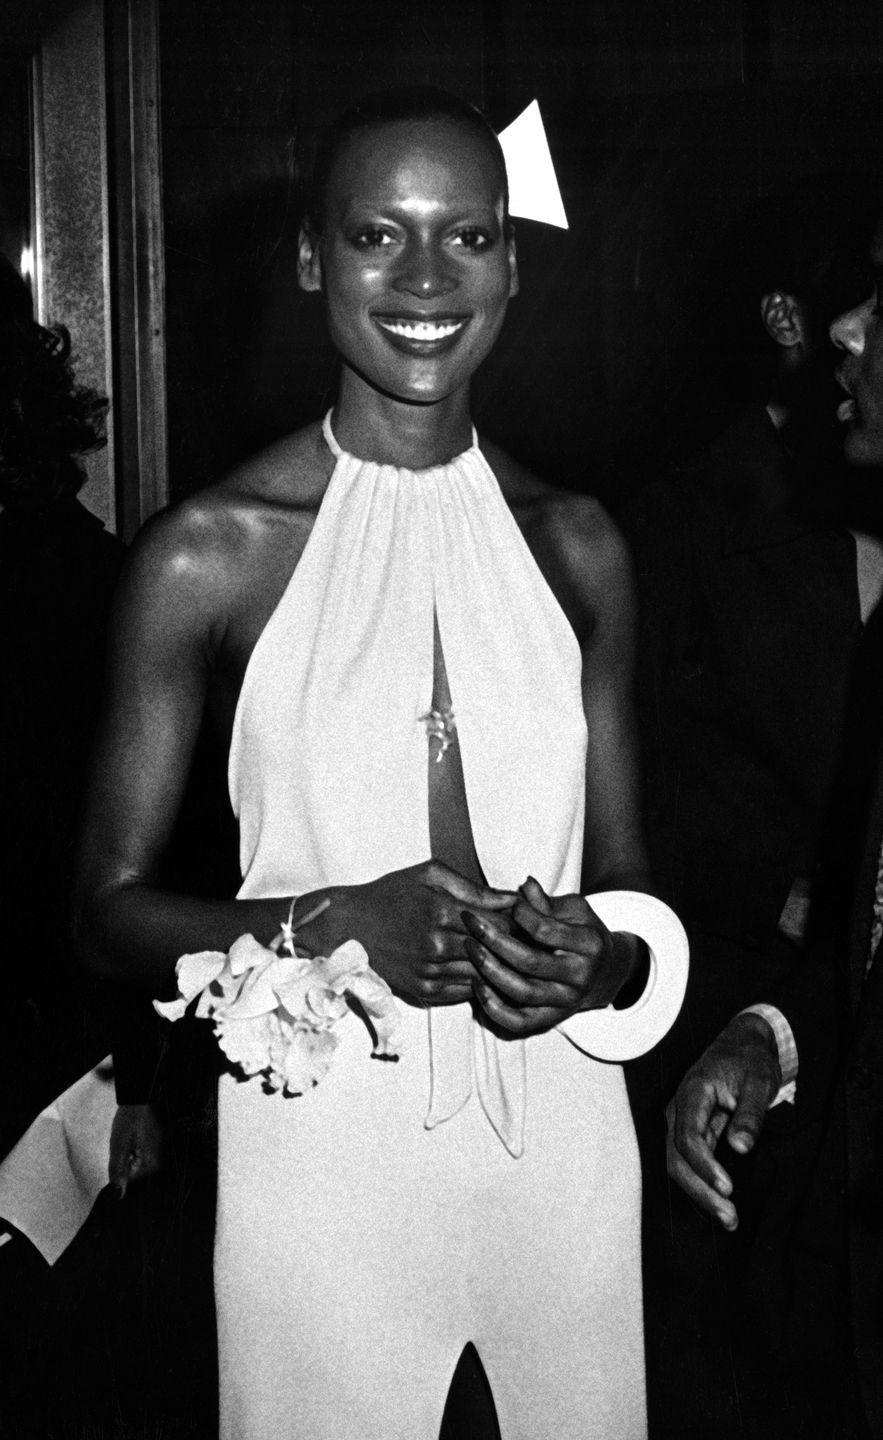 <p>Naomi Sims entered the fashion industry at a time when there was unfortunately little representation of Black women. She made a mark securing many cover stories and designing her own collection of wigs.</p>